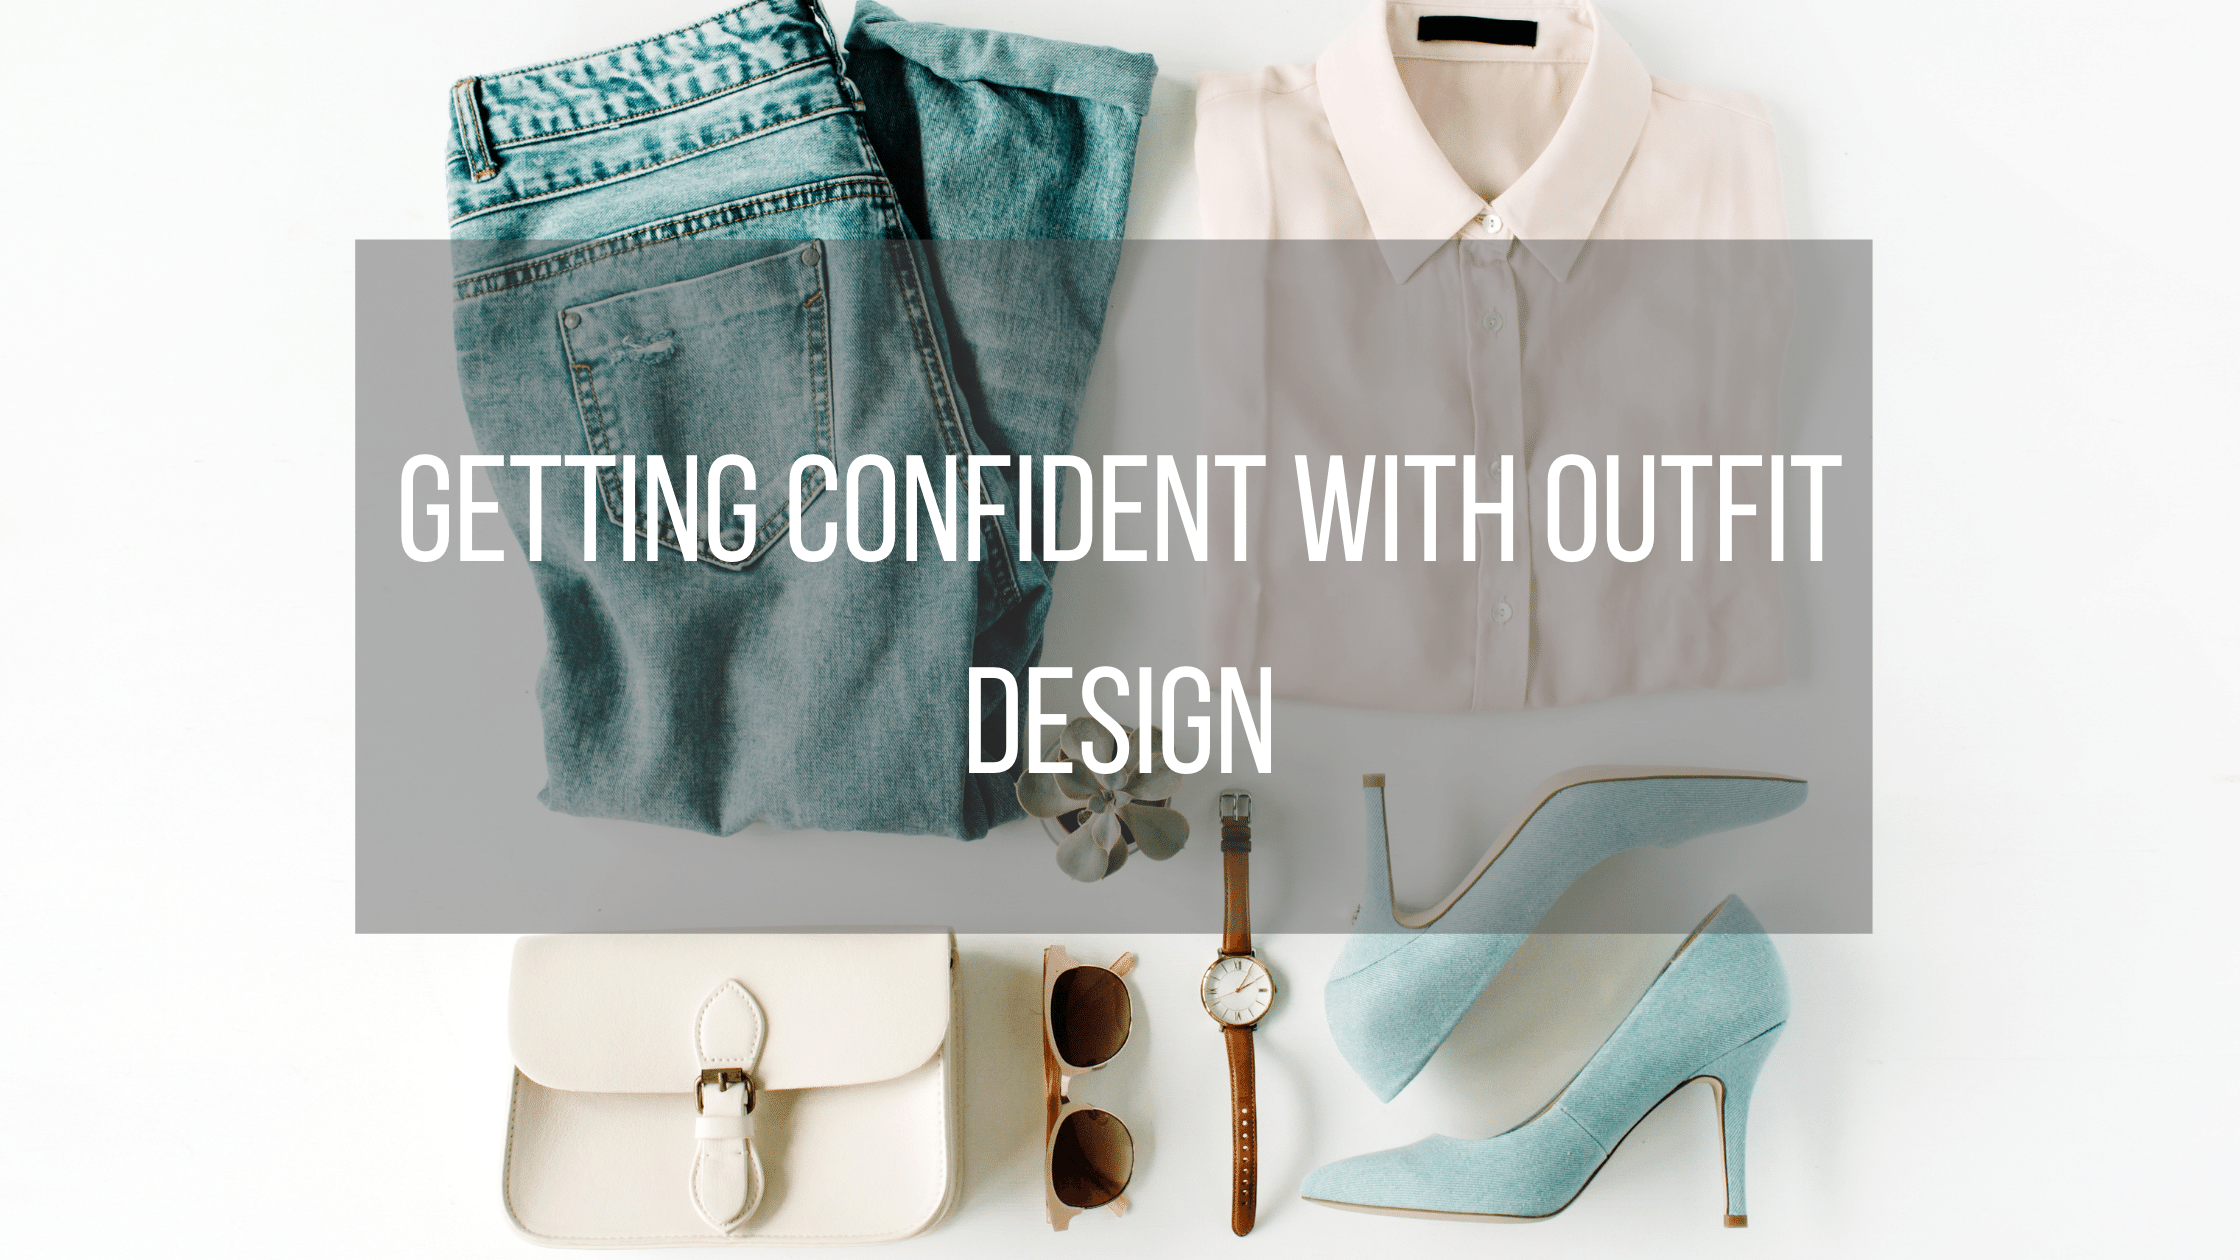 Getting confident with outfit design